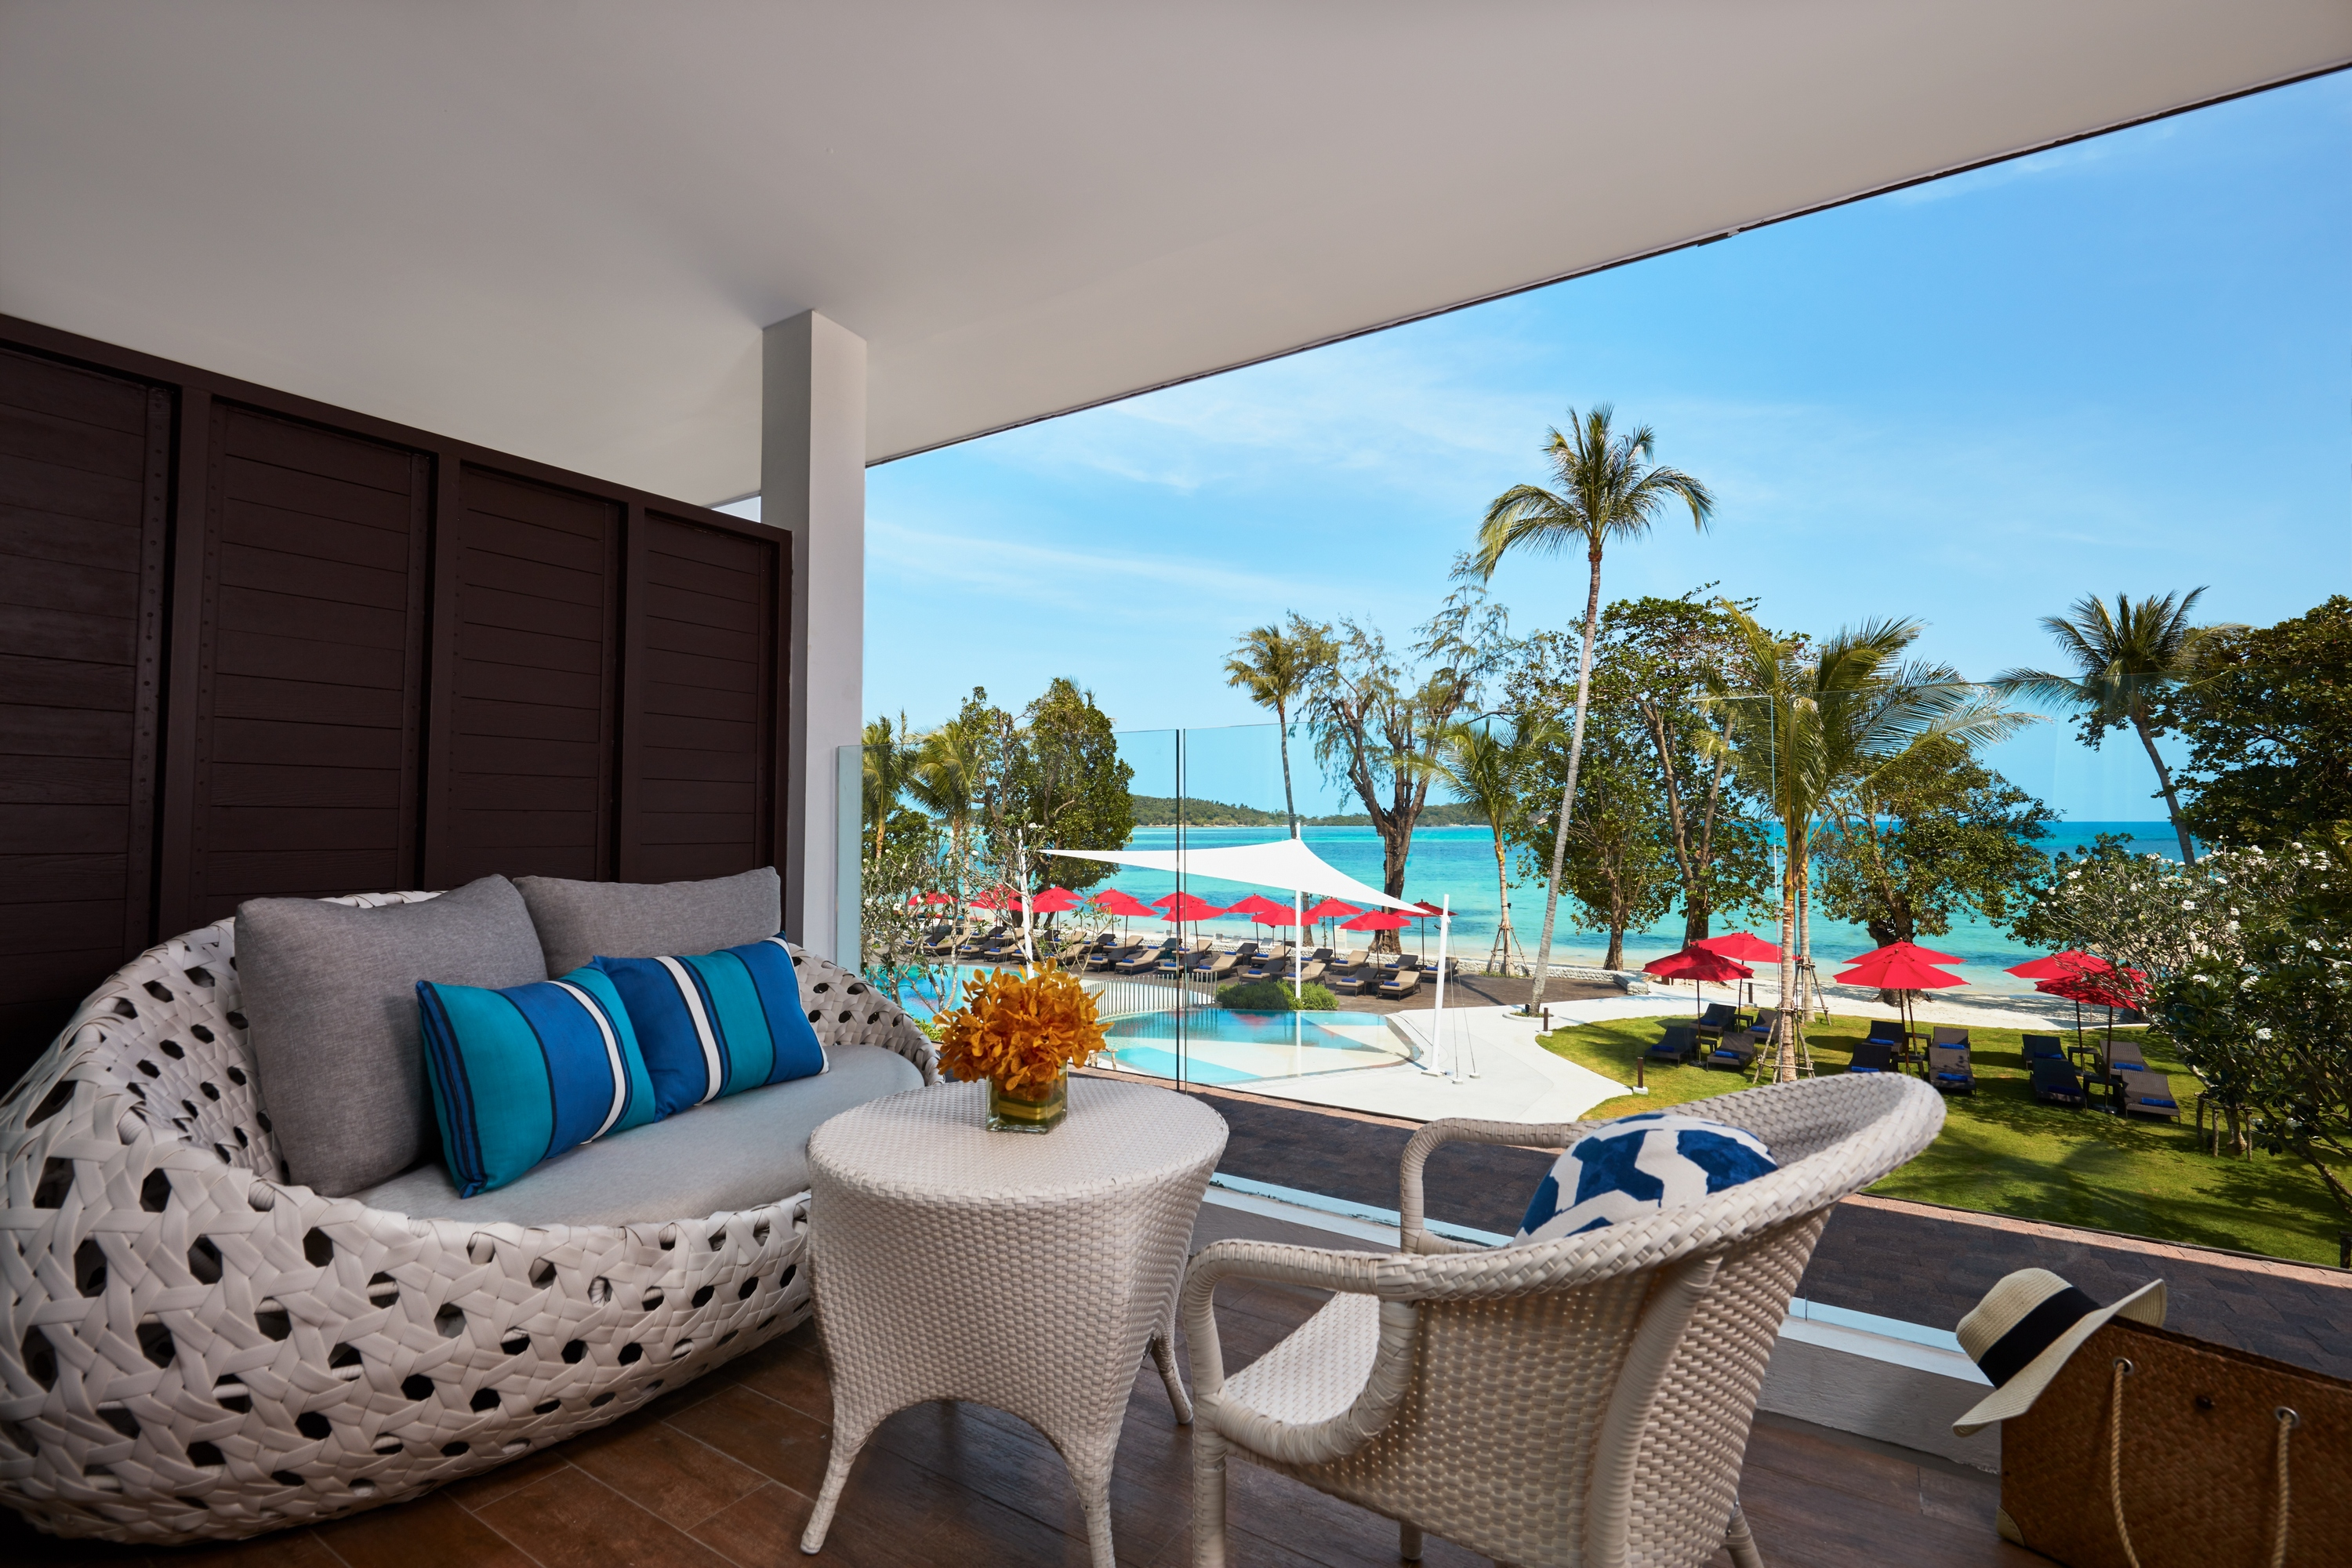 How to Choose Your Room at Amari Koh Samui